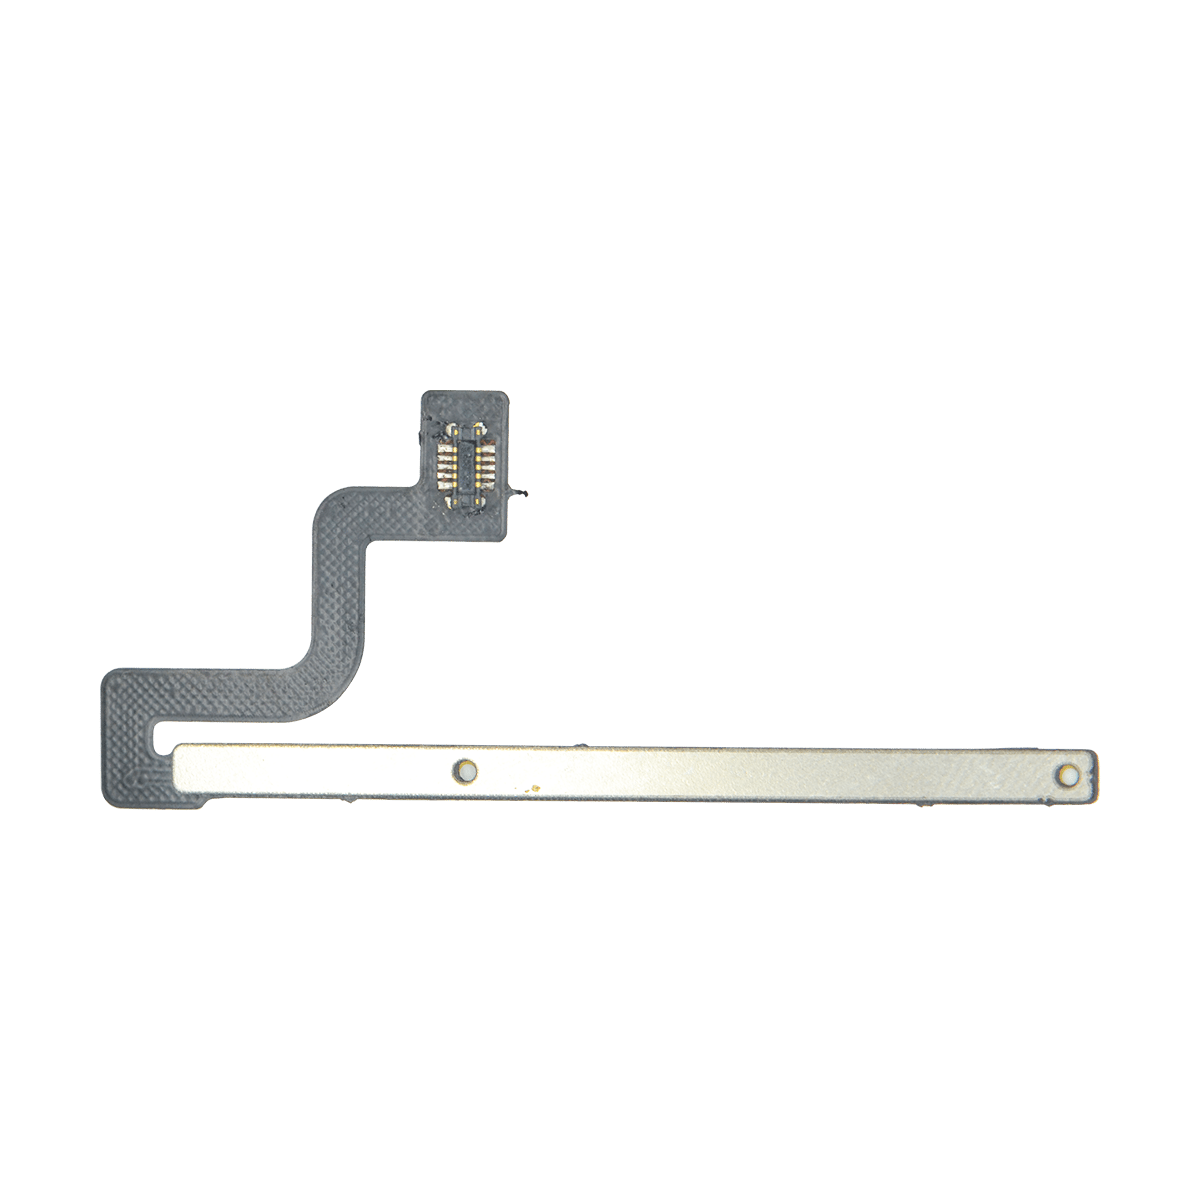 Power & Volume Buttons Flex Cable Replacement for Google Pixel XL